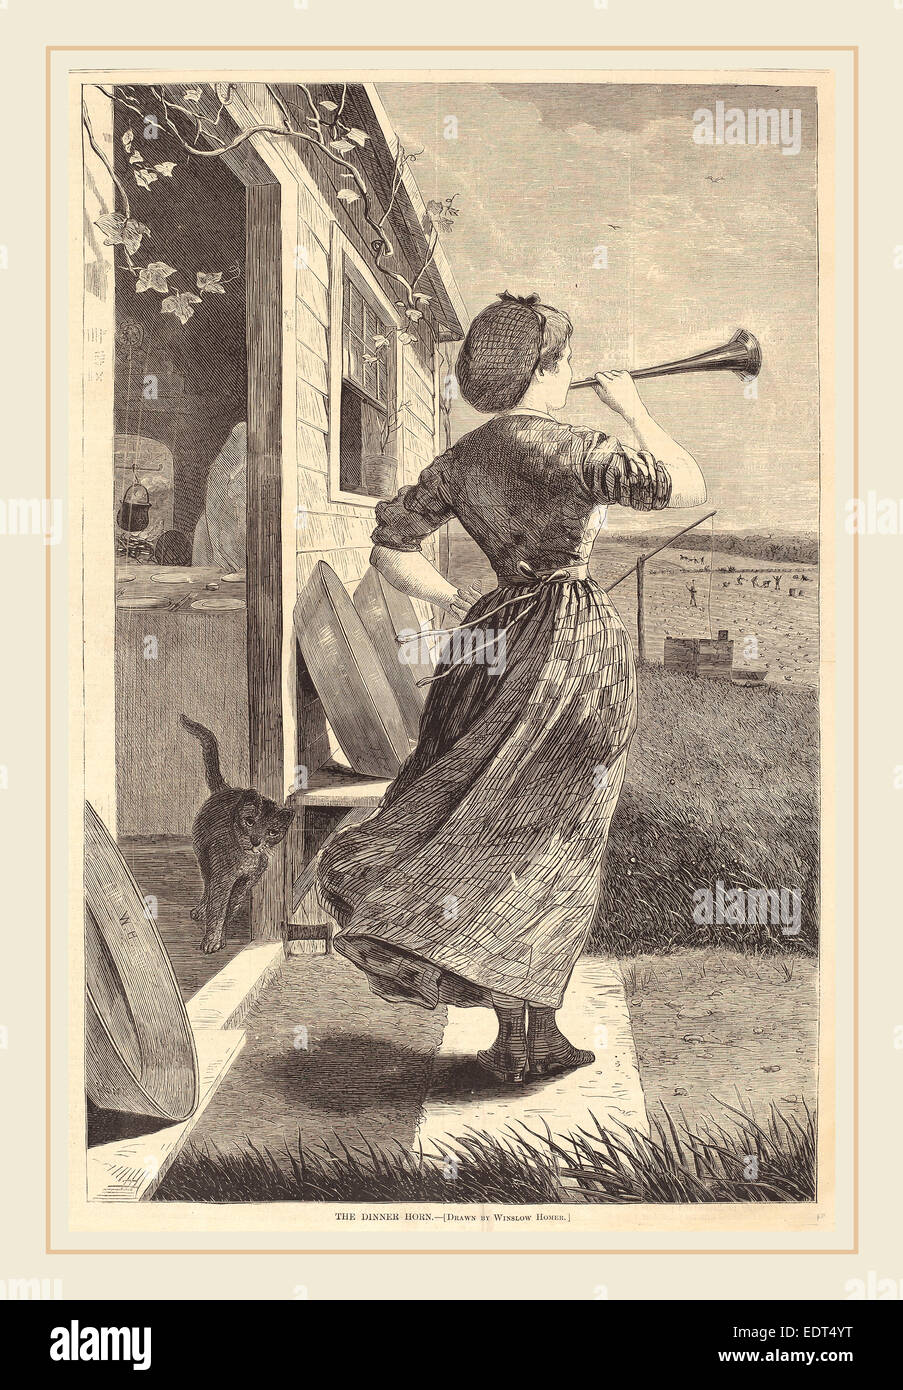 after Winslow Homer, The Dinner Horn, published 1870, wood engraving - Stock Image